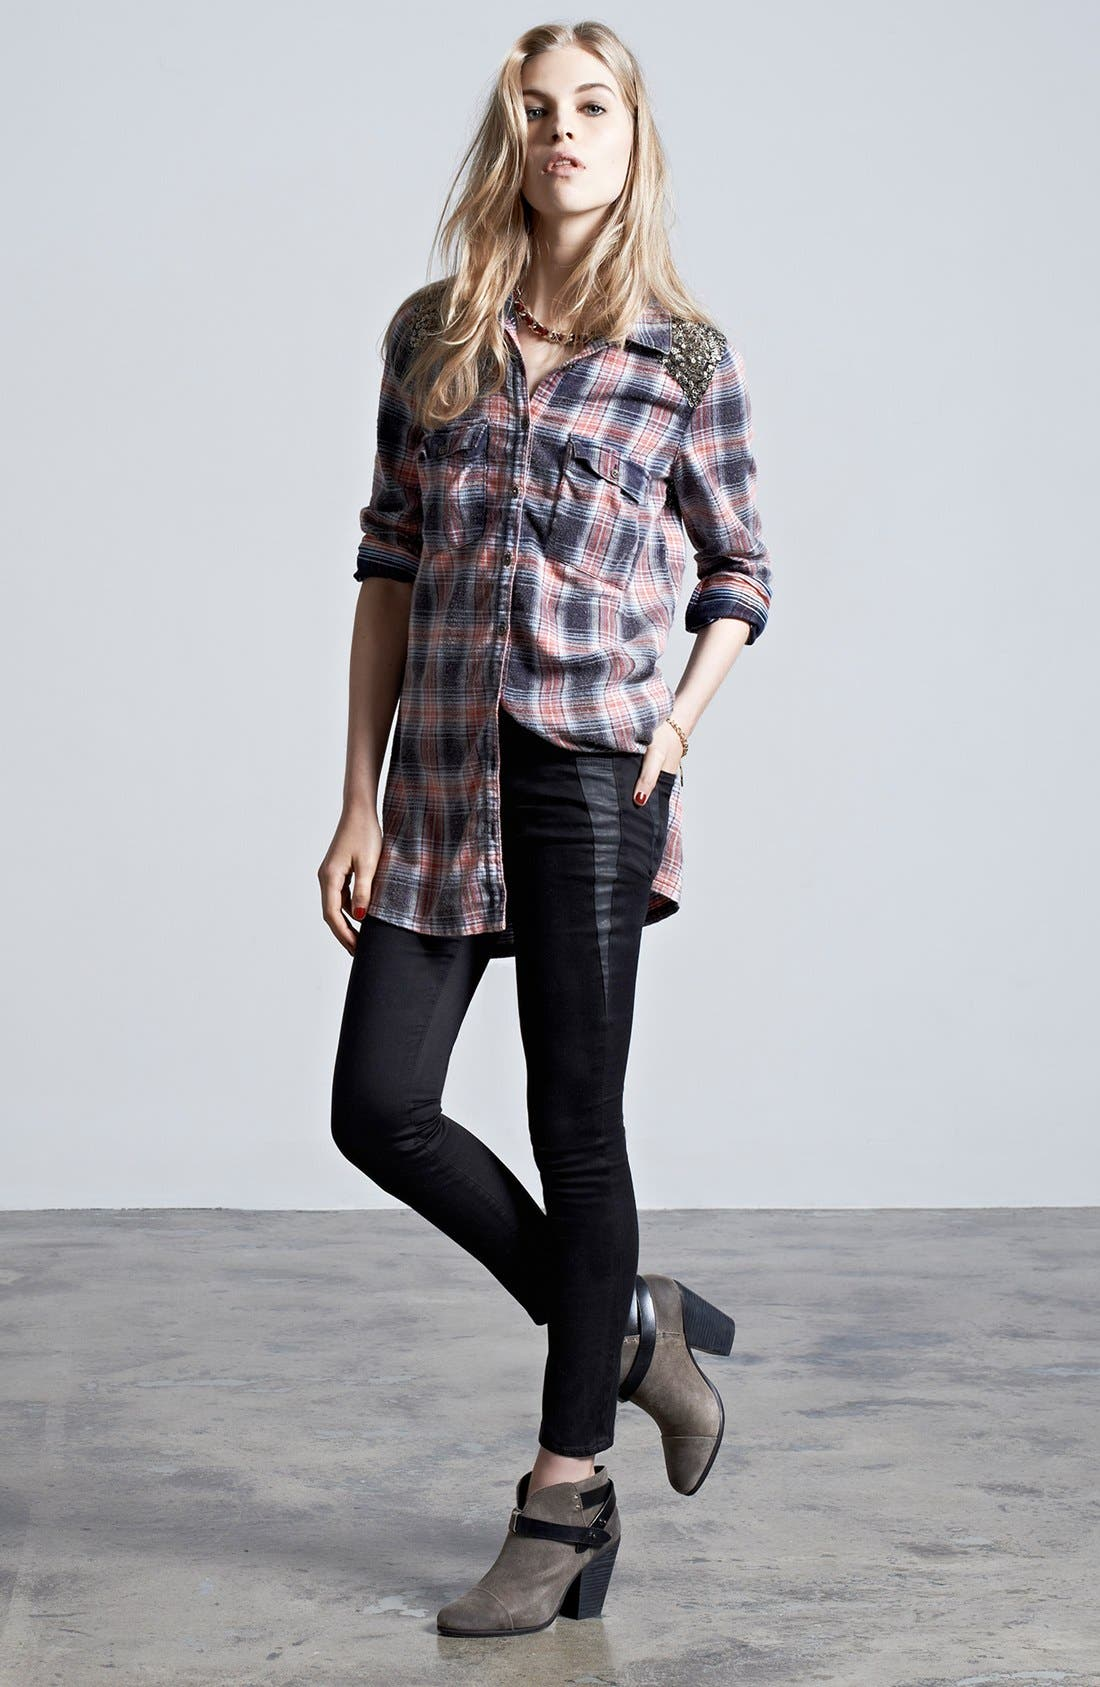 Alternate Image 1 Selected - Free People Tunic Shirt & Joe's Ankle Jeans